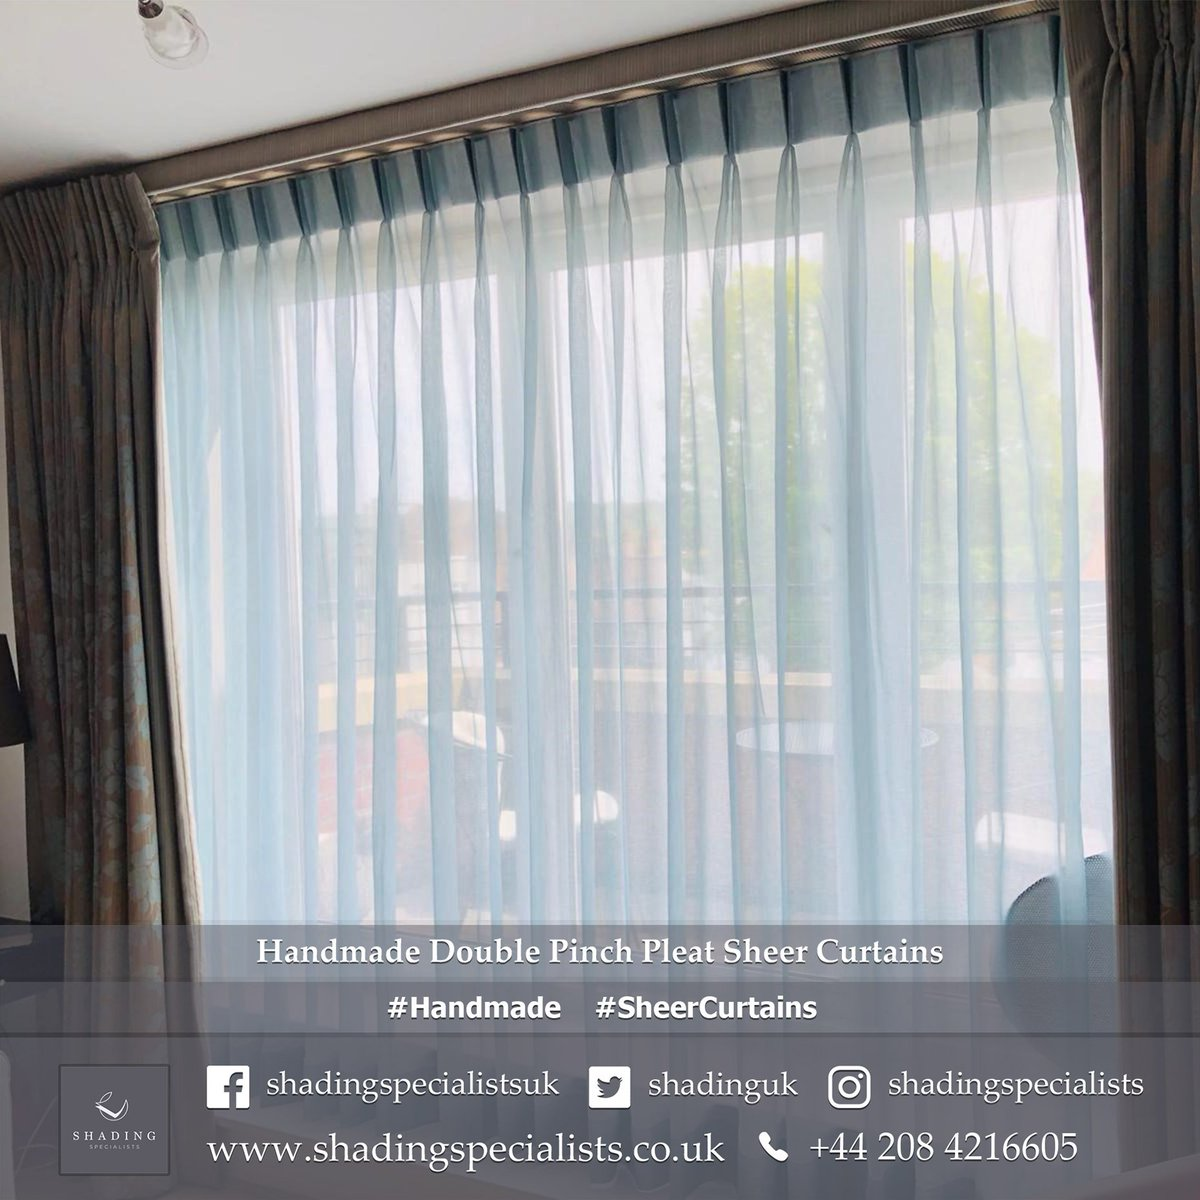 Shading Specialists On Twitter Handmade Double Pinch Pleat Sheer Curtains Https T Co Nsomopqwjo Handmade Sheercurtains Curtiansuk Curtainslondon Windowshading Windowtreatments Homeinspo Homedecor Interiordesign Https T Co Kgjahcf07r